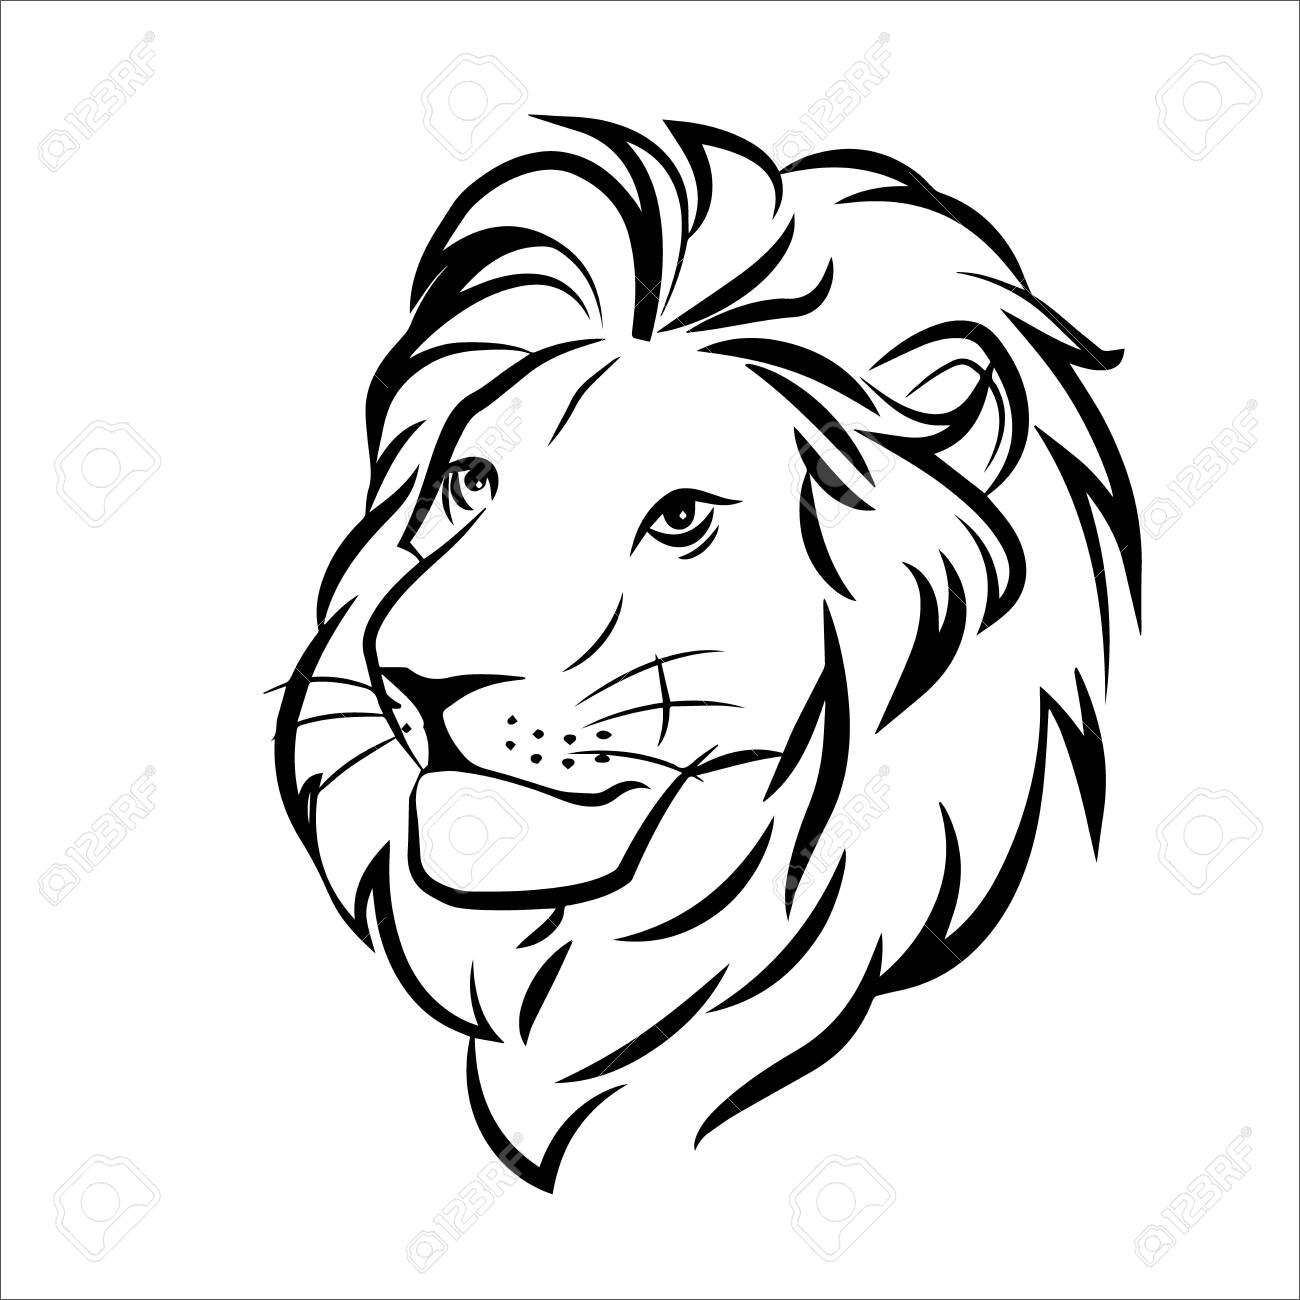 lion head in color logo on white background - 144853790